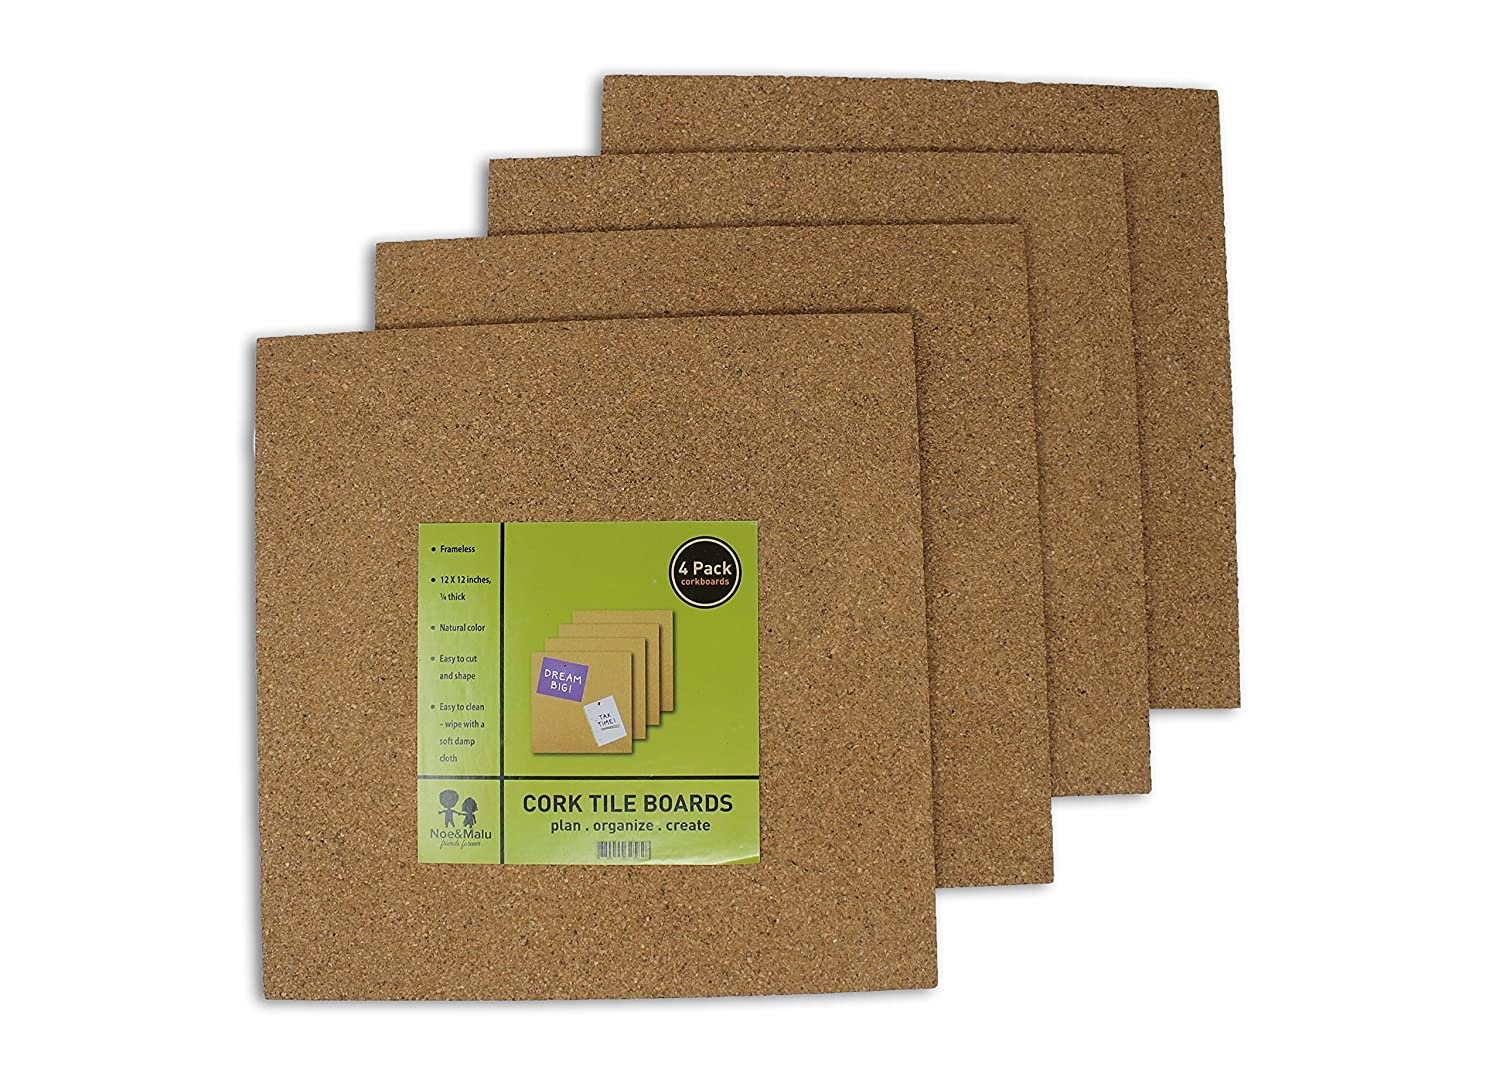 Cork Tile Boards - Office Wall Bulletin Boards - Unframed Strong Self Adhesive - Natural - 4 Pack - 12 x 12 Inches Noe & Malu